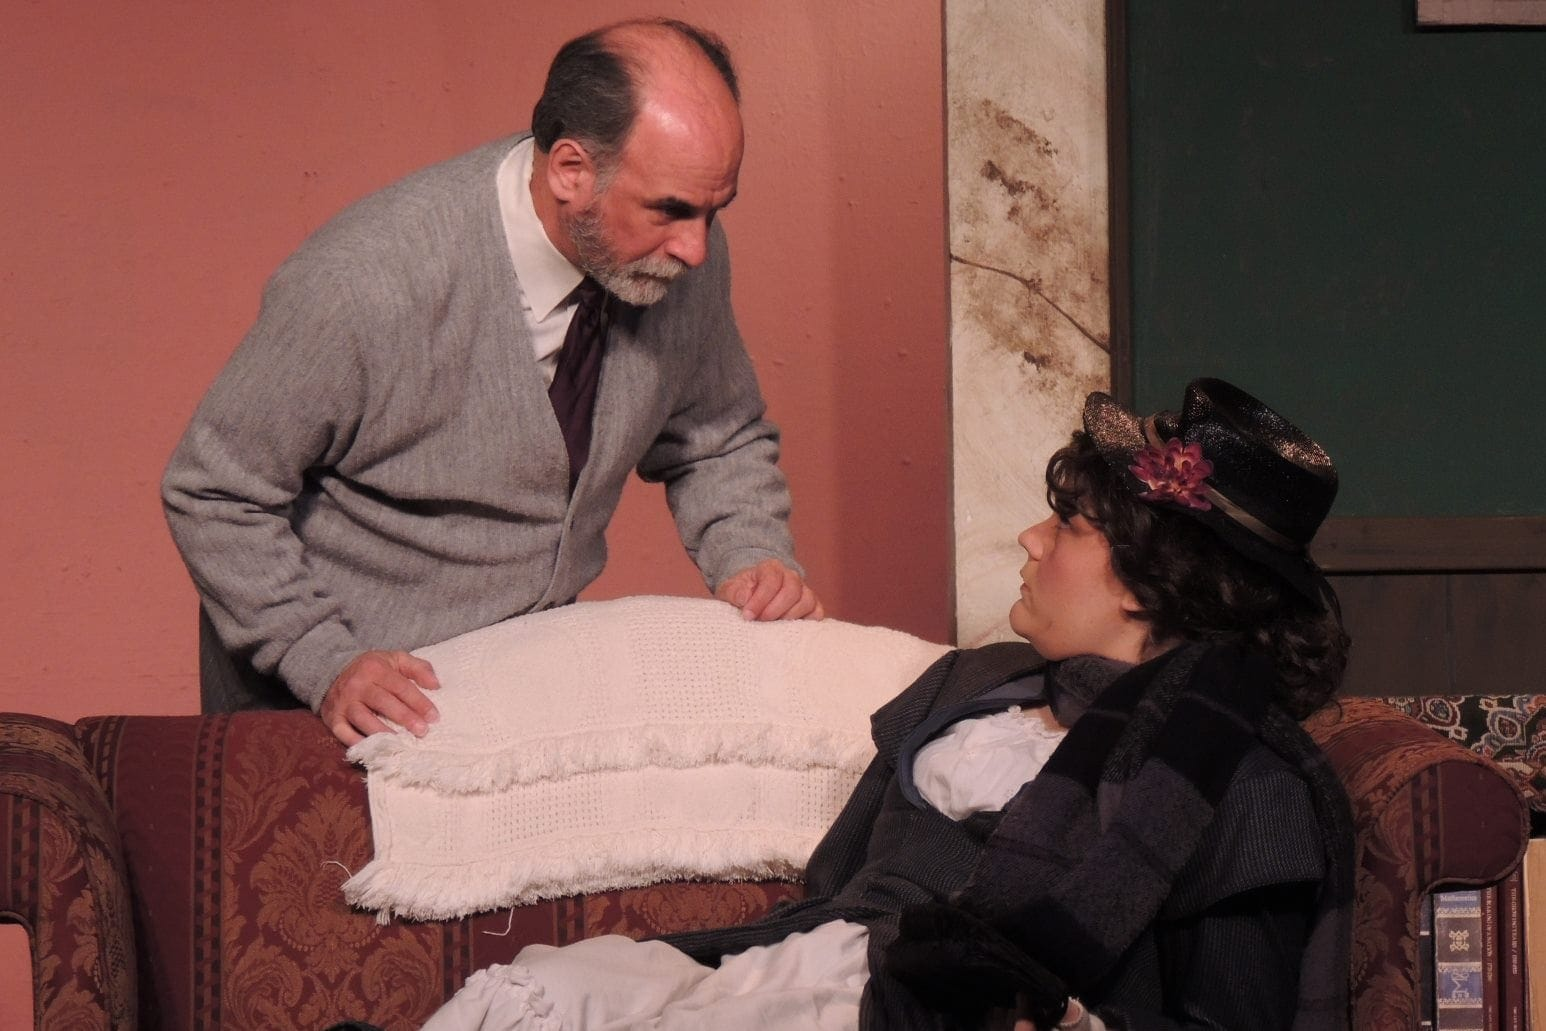 Ken Kemp as Higgins and Megan E. West as Eliza in Way Off Broadway Dinner Theatre's production of 'My Fair Lady.' Photo courtesy of Way Off Broadway Dinner Theatre.